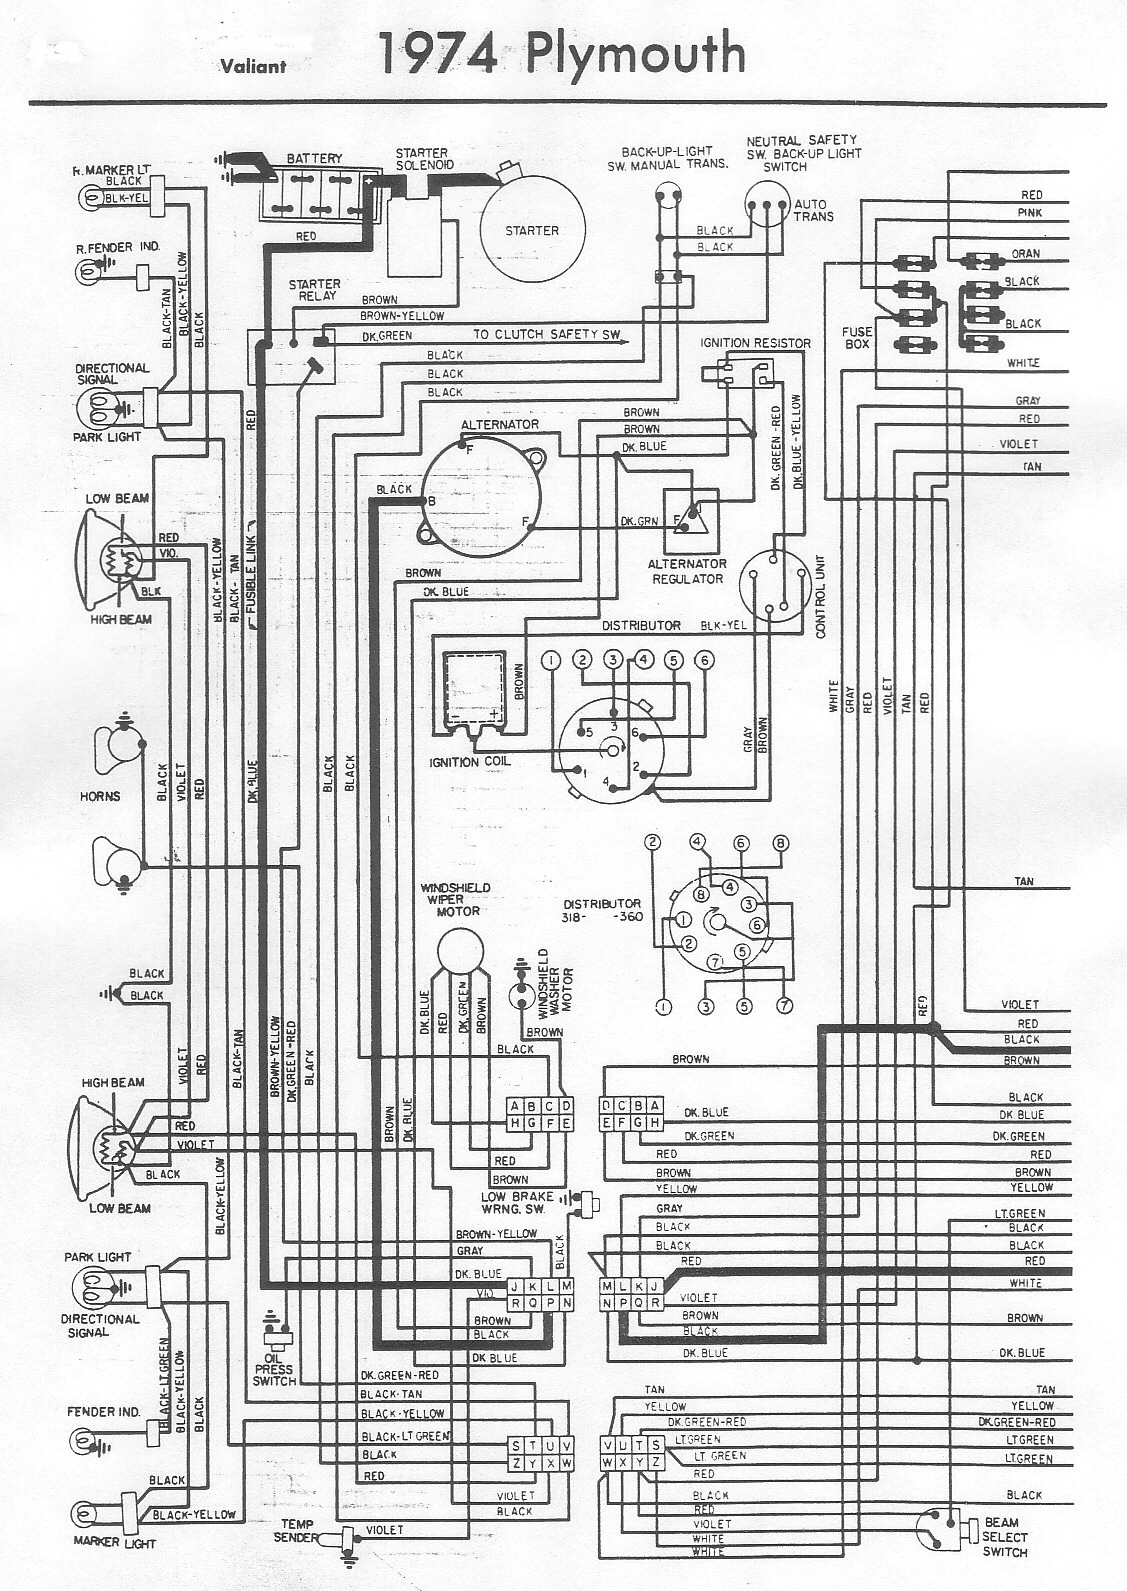 Plymouth Fog Lights Wiring Diagram : Car wiring diagrams for remote starter get free image